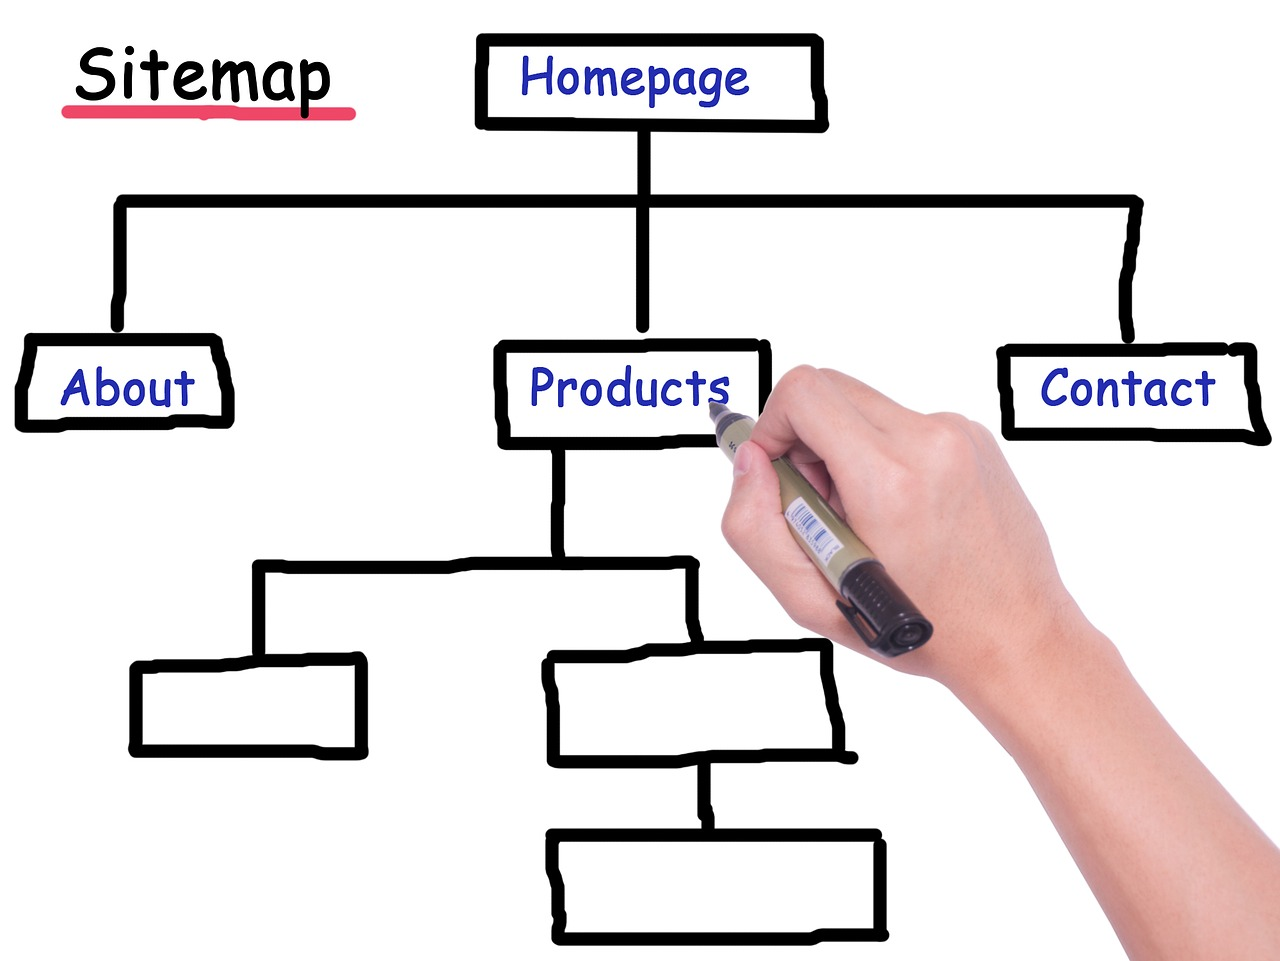 Difference Between Sitemap and Wireframe